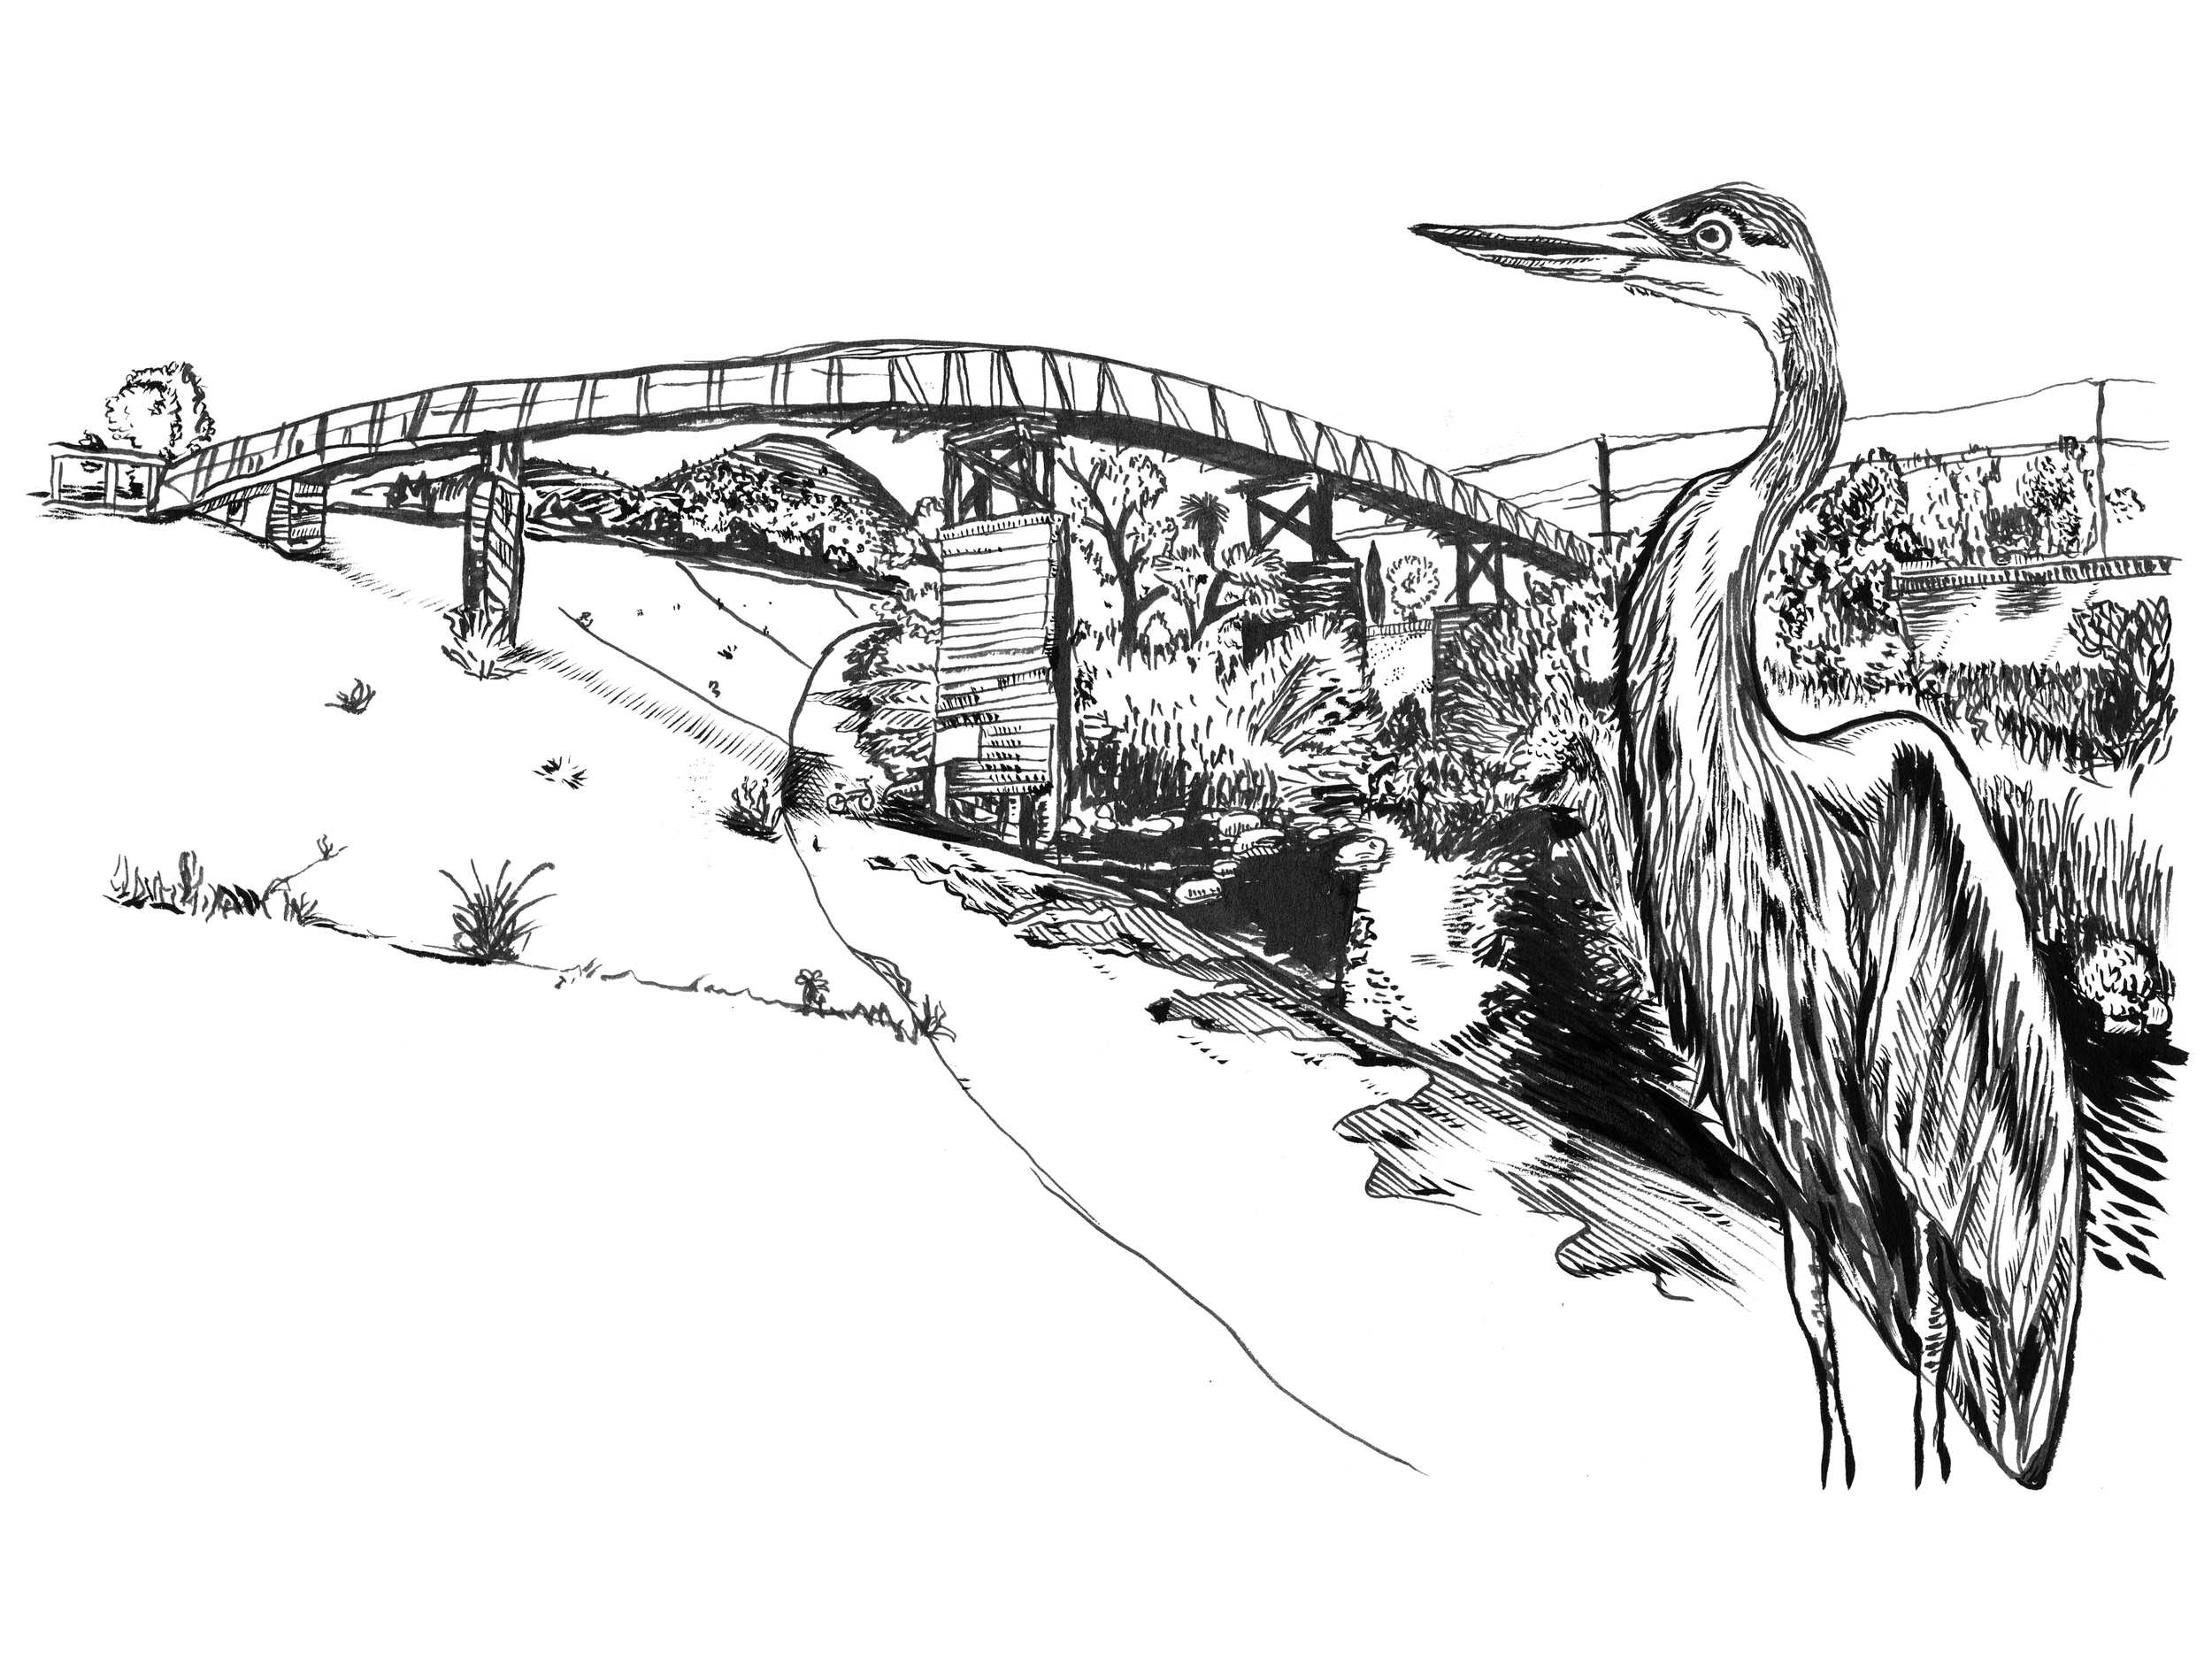 Great Blue Heron - Sunnynook Footbridge over the L.A. River, Atwater Village   - This is one of my favorite spots on the Los Angeles River. The scale of the footbridge is human and intimate, while it's height affords a great vantage point to see the natural beauty below.